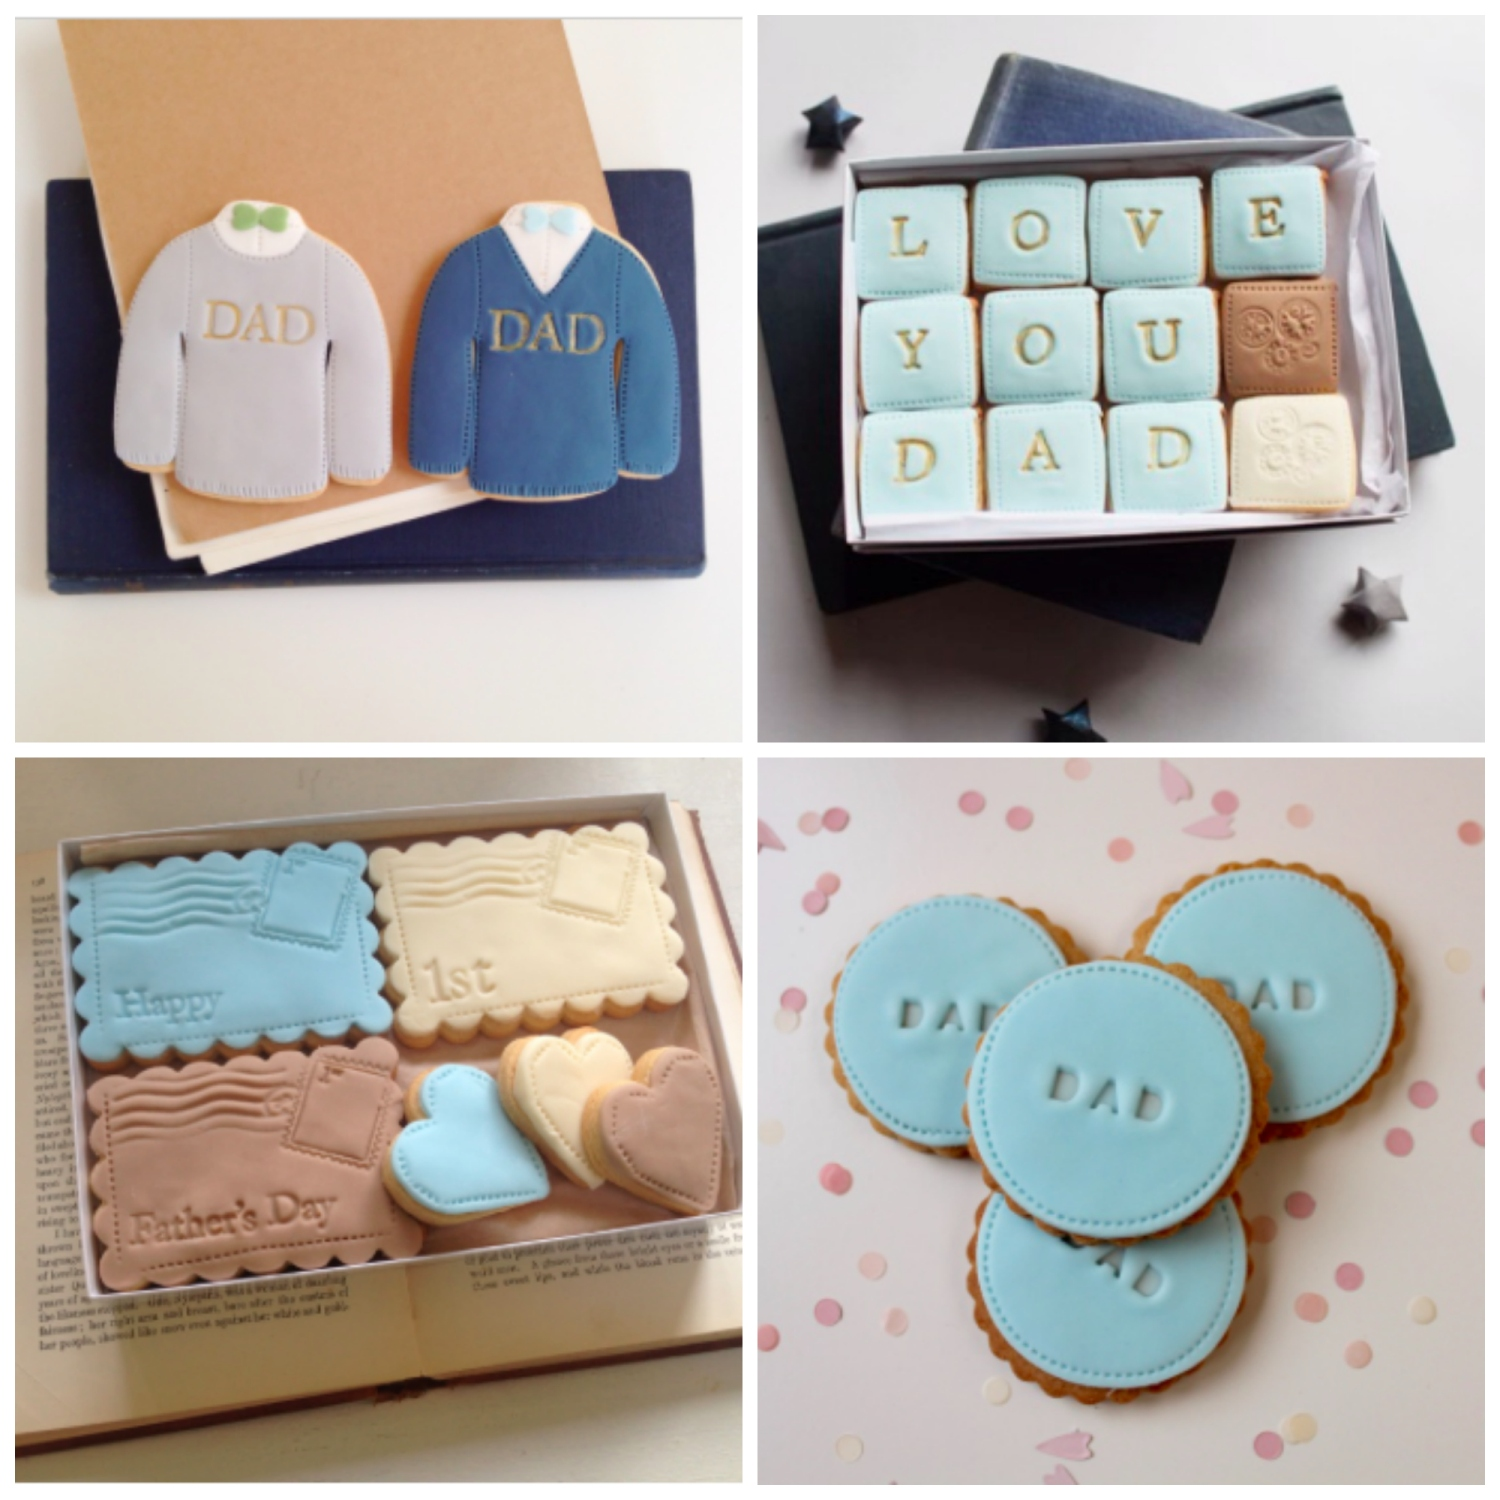 Fathers Day biscuits nila holden collage.jpg